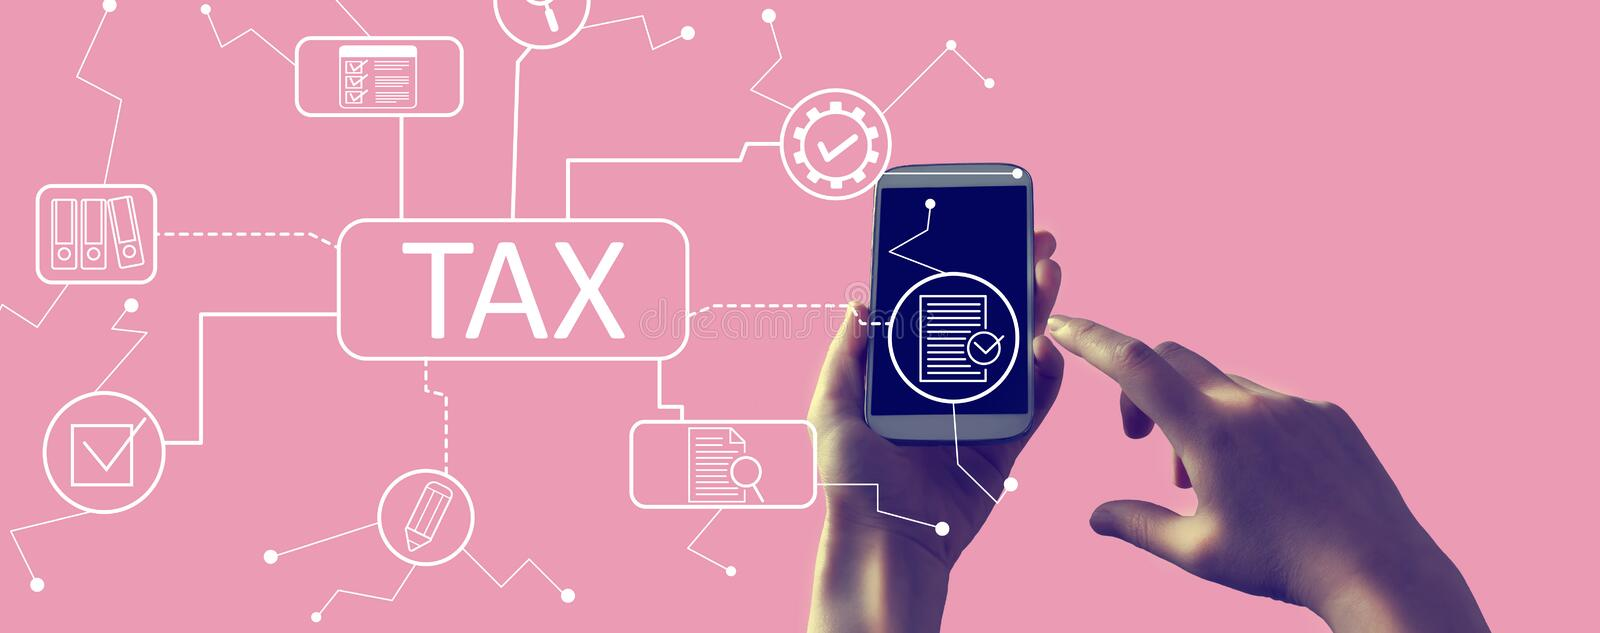 Tax theme with smartphone vector illustration